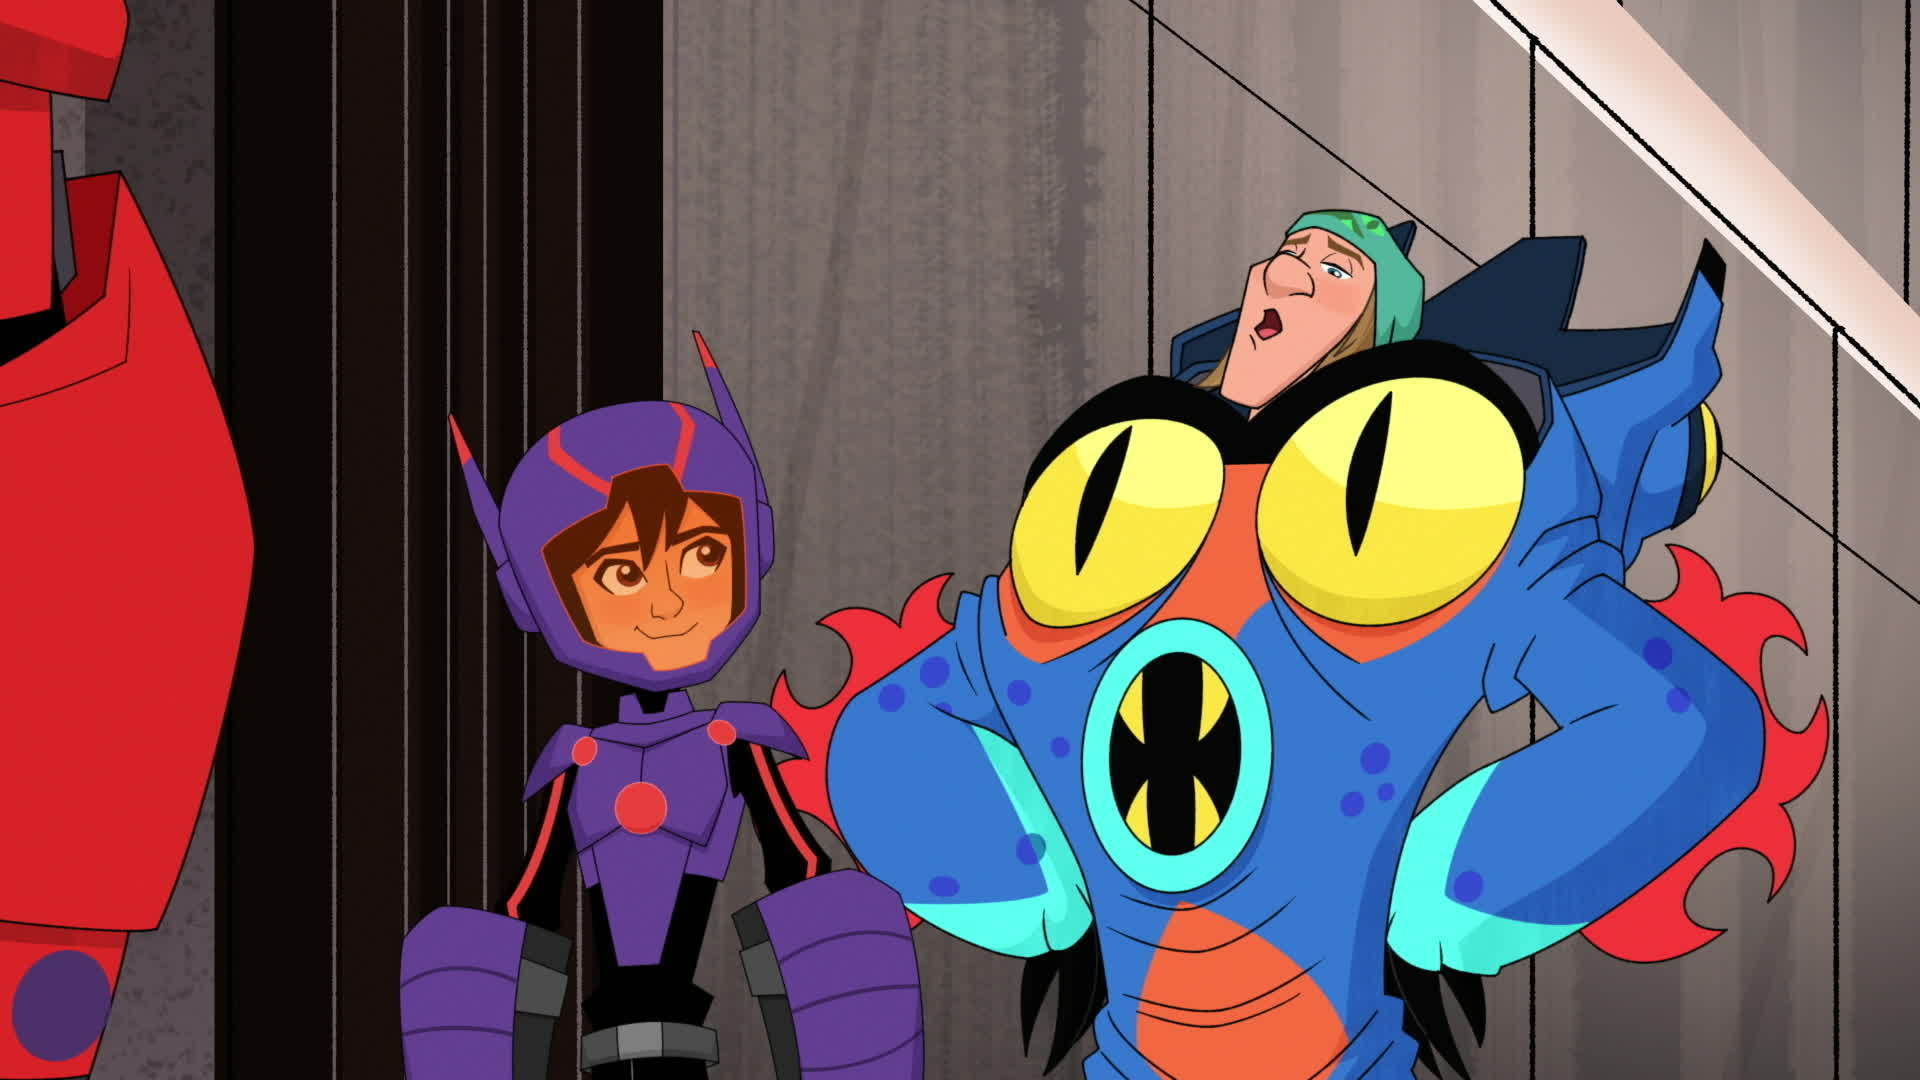 Music Video: Big Hero 6 Remix